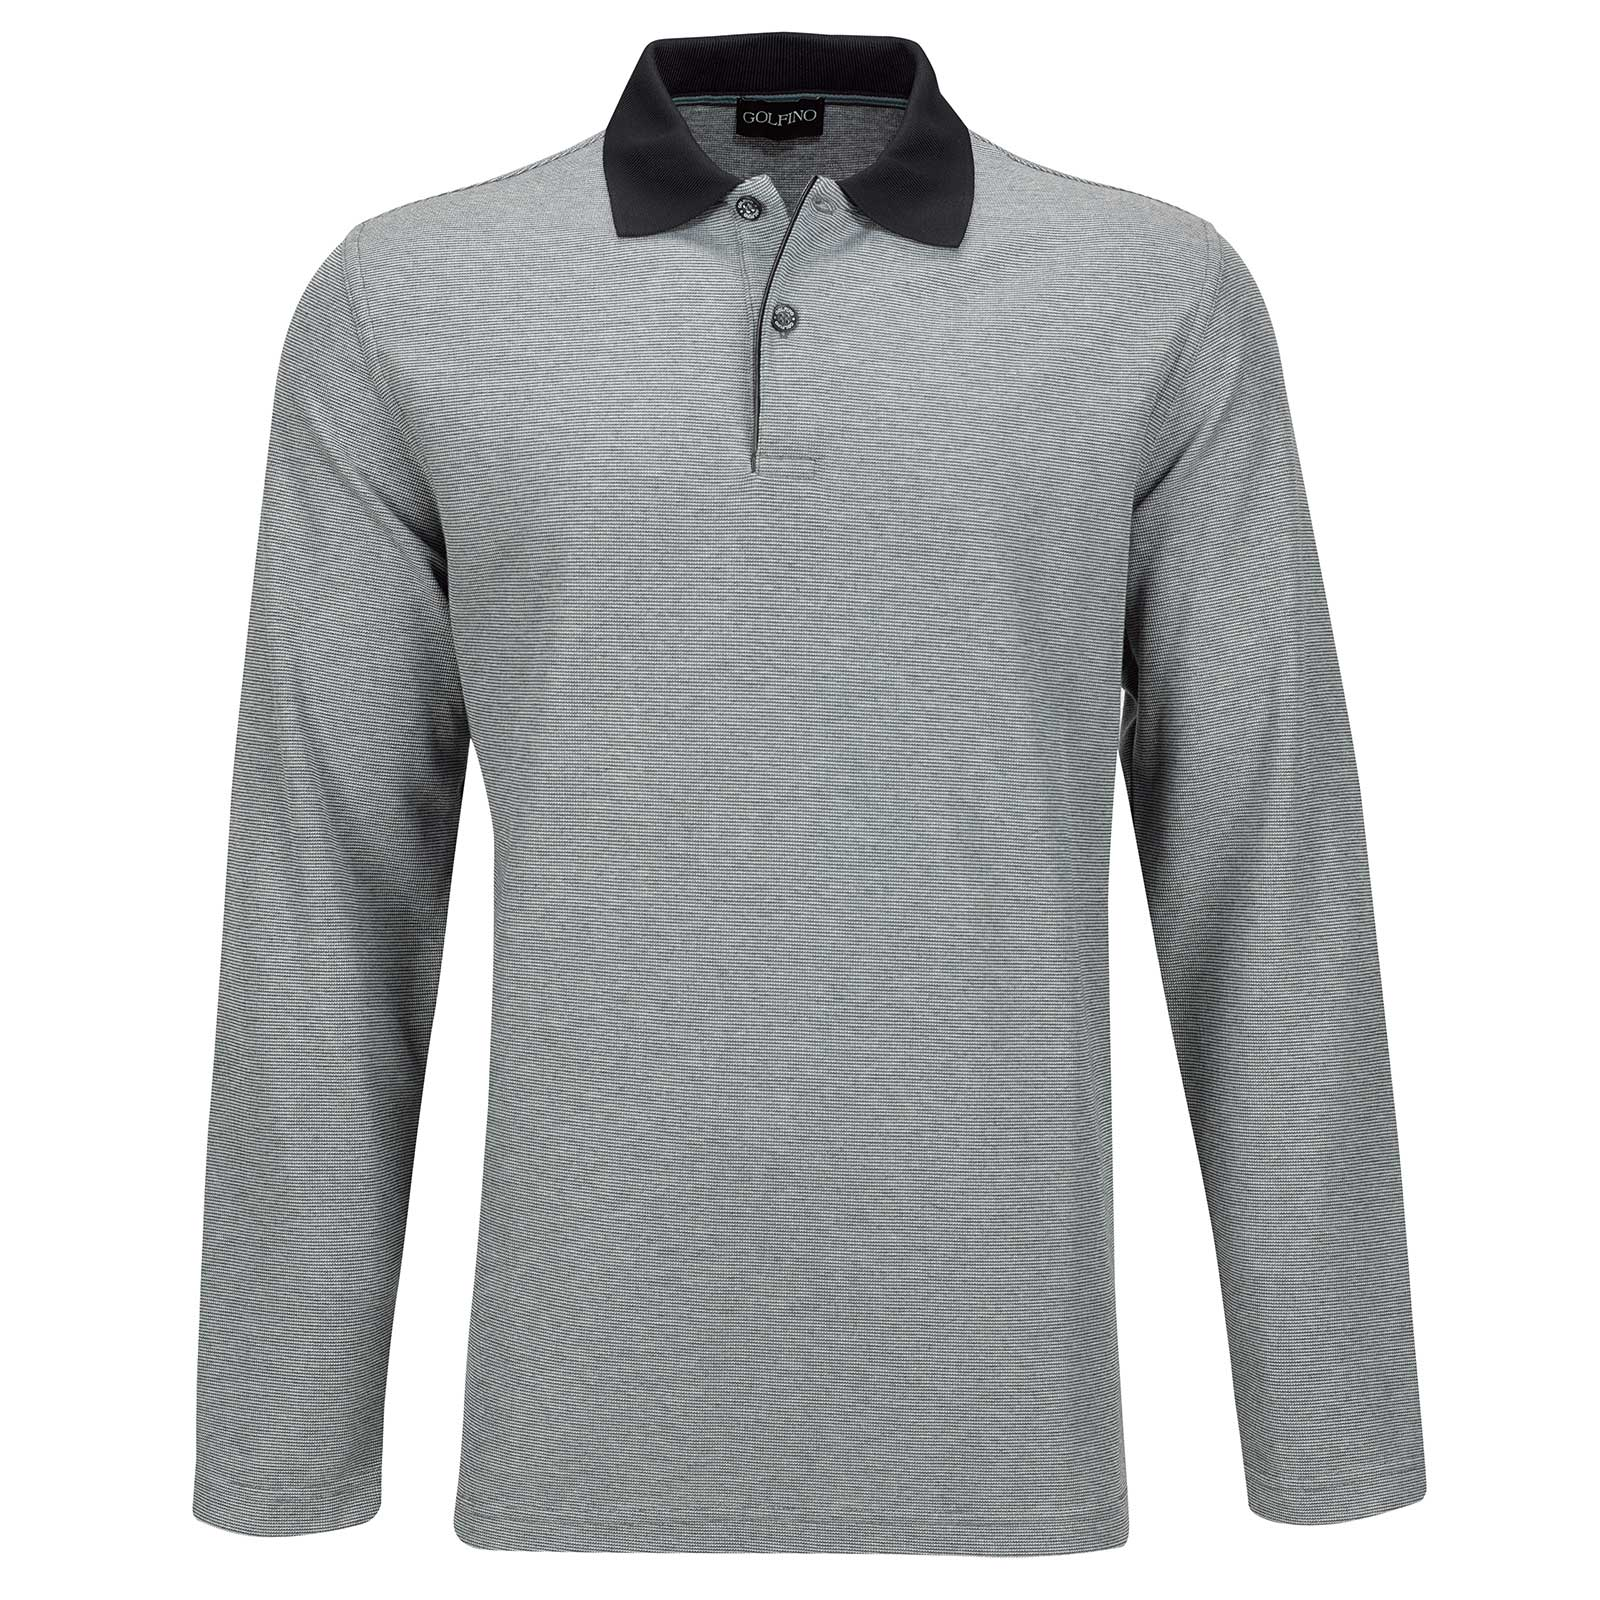 Silver Protection Herren Langarm Golfpolo mit Moisture Management in Regular Fit